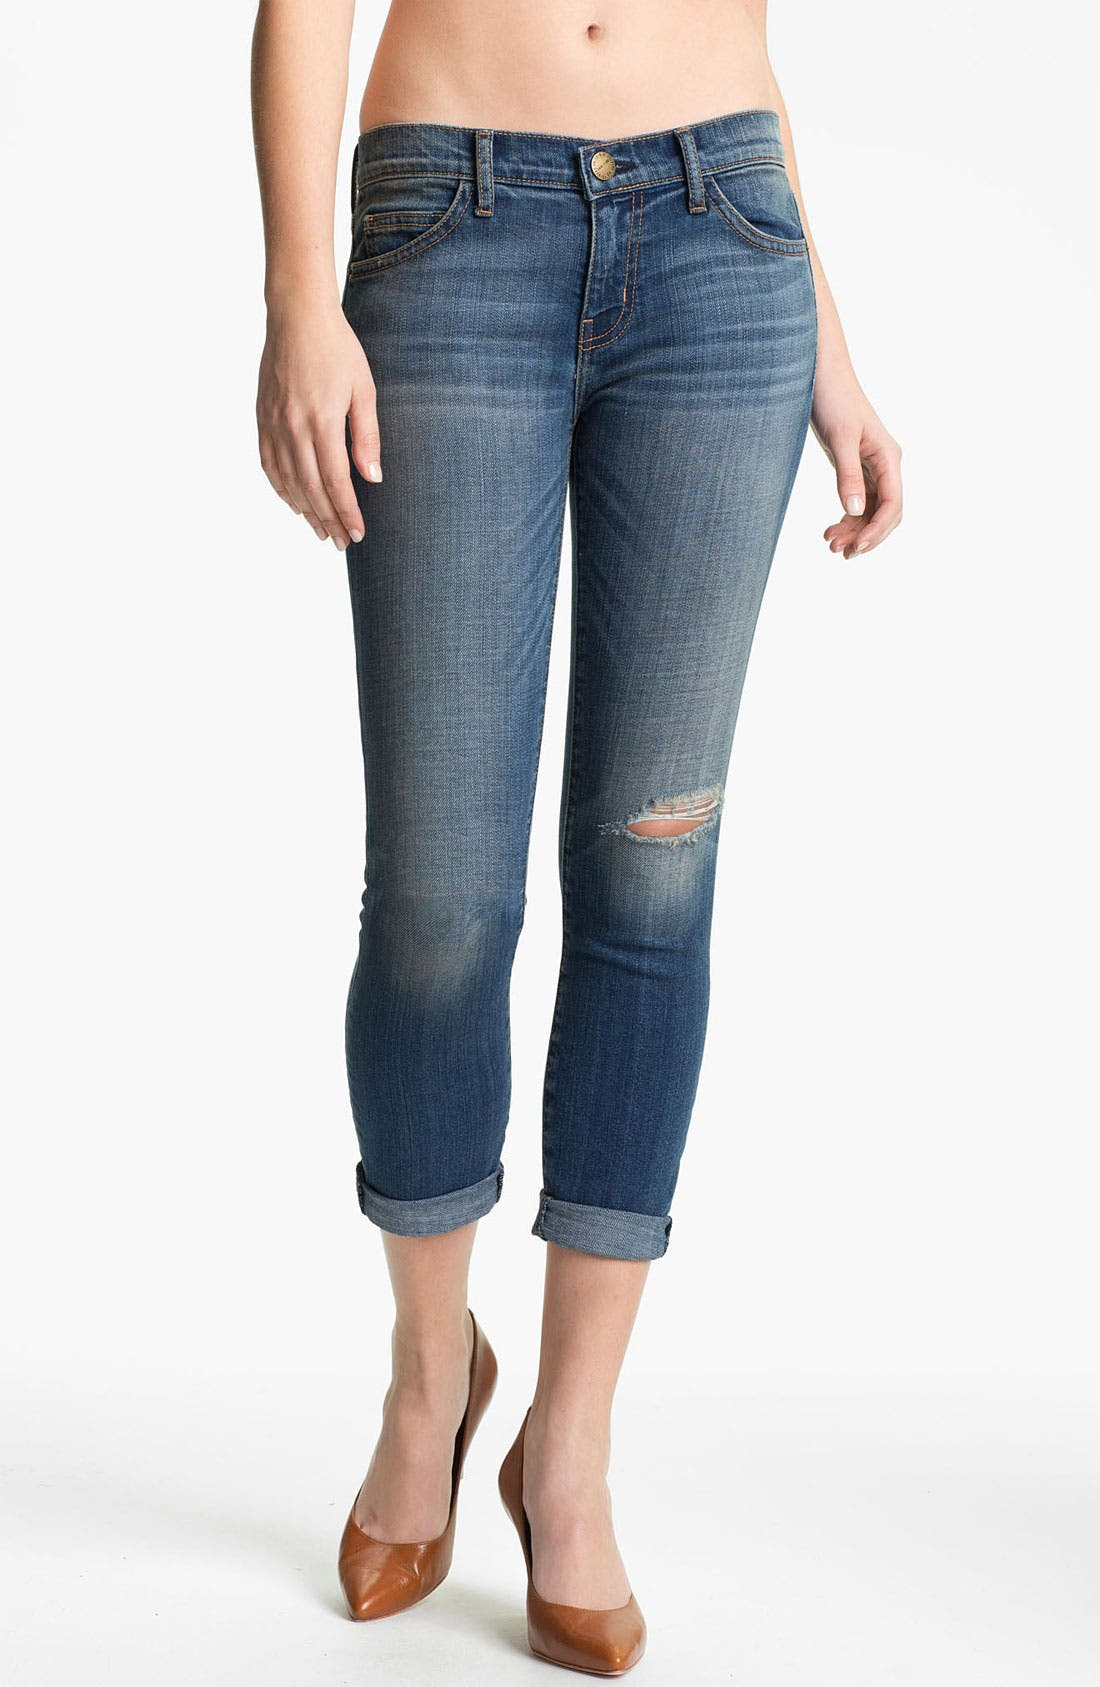 Alternate Image 1 Selected - Current/Elliott 'The Stiletto' Skinny Stretch Jeans (Juke Box/Destroy)